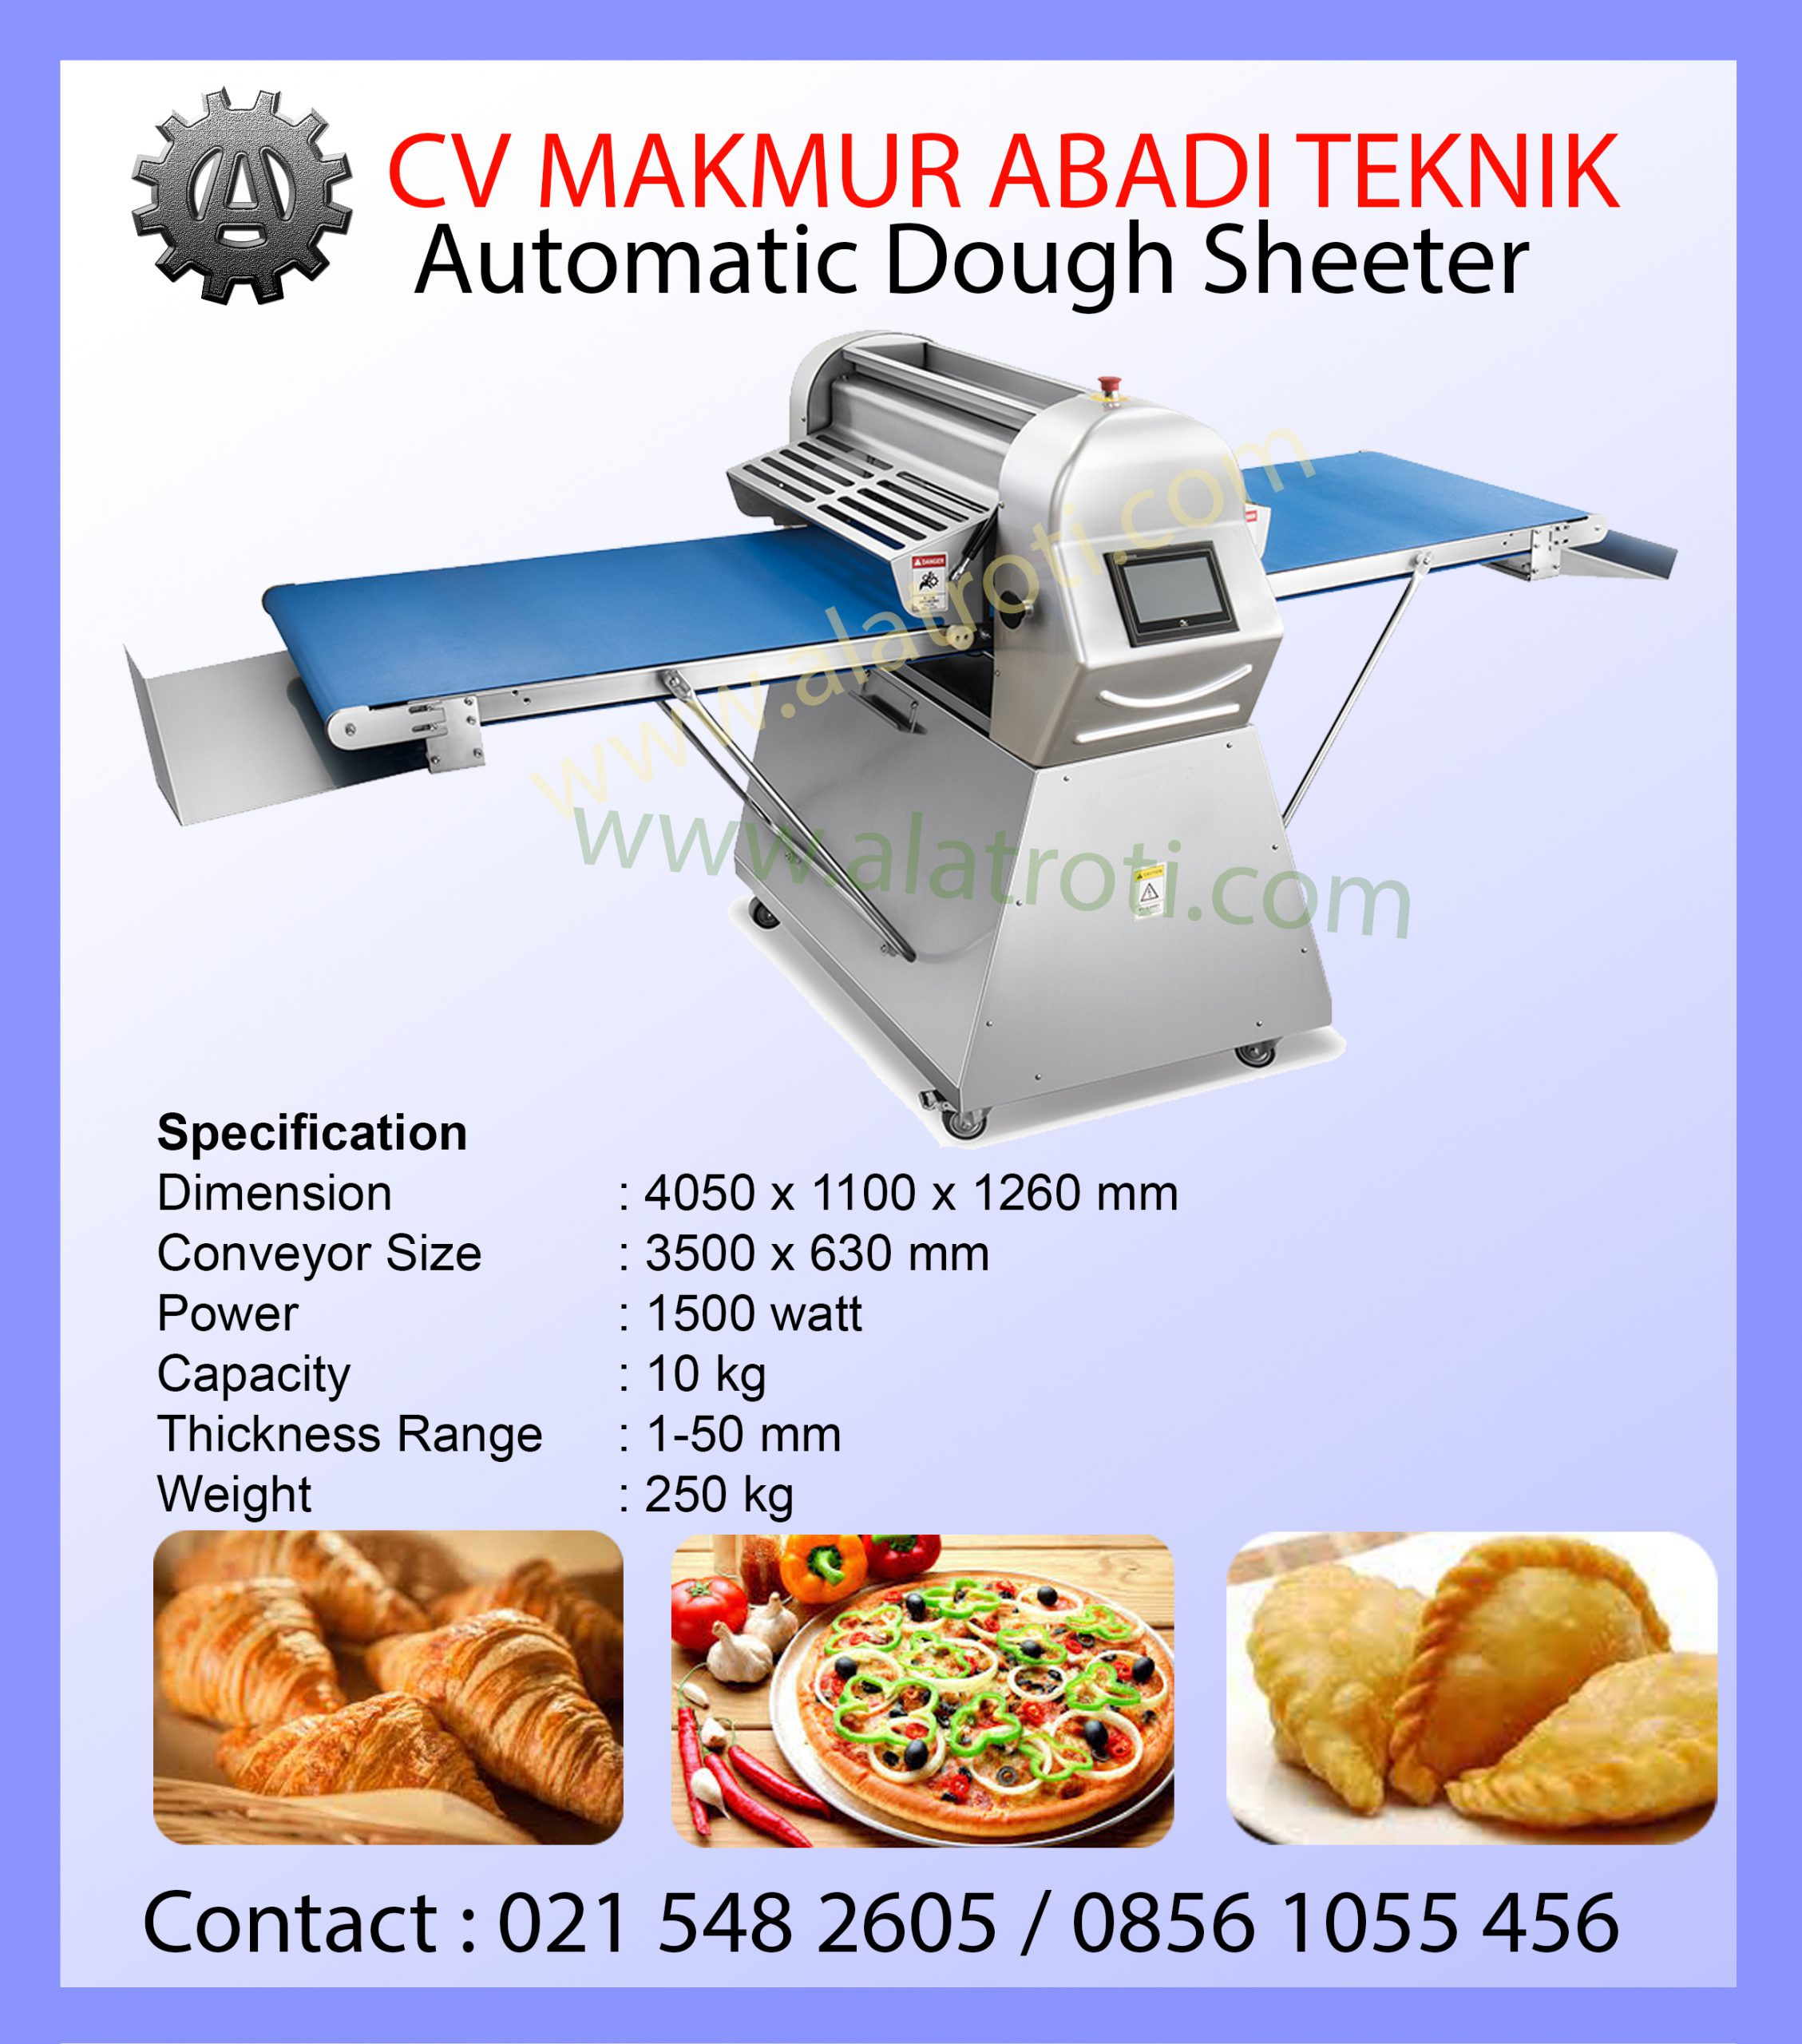 Automatic Dough Sheeter